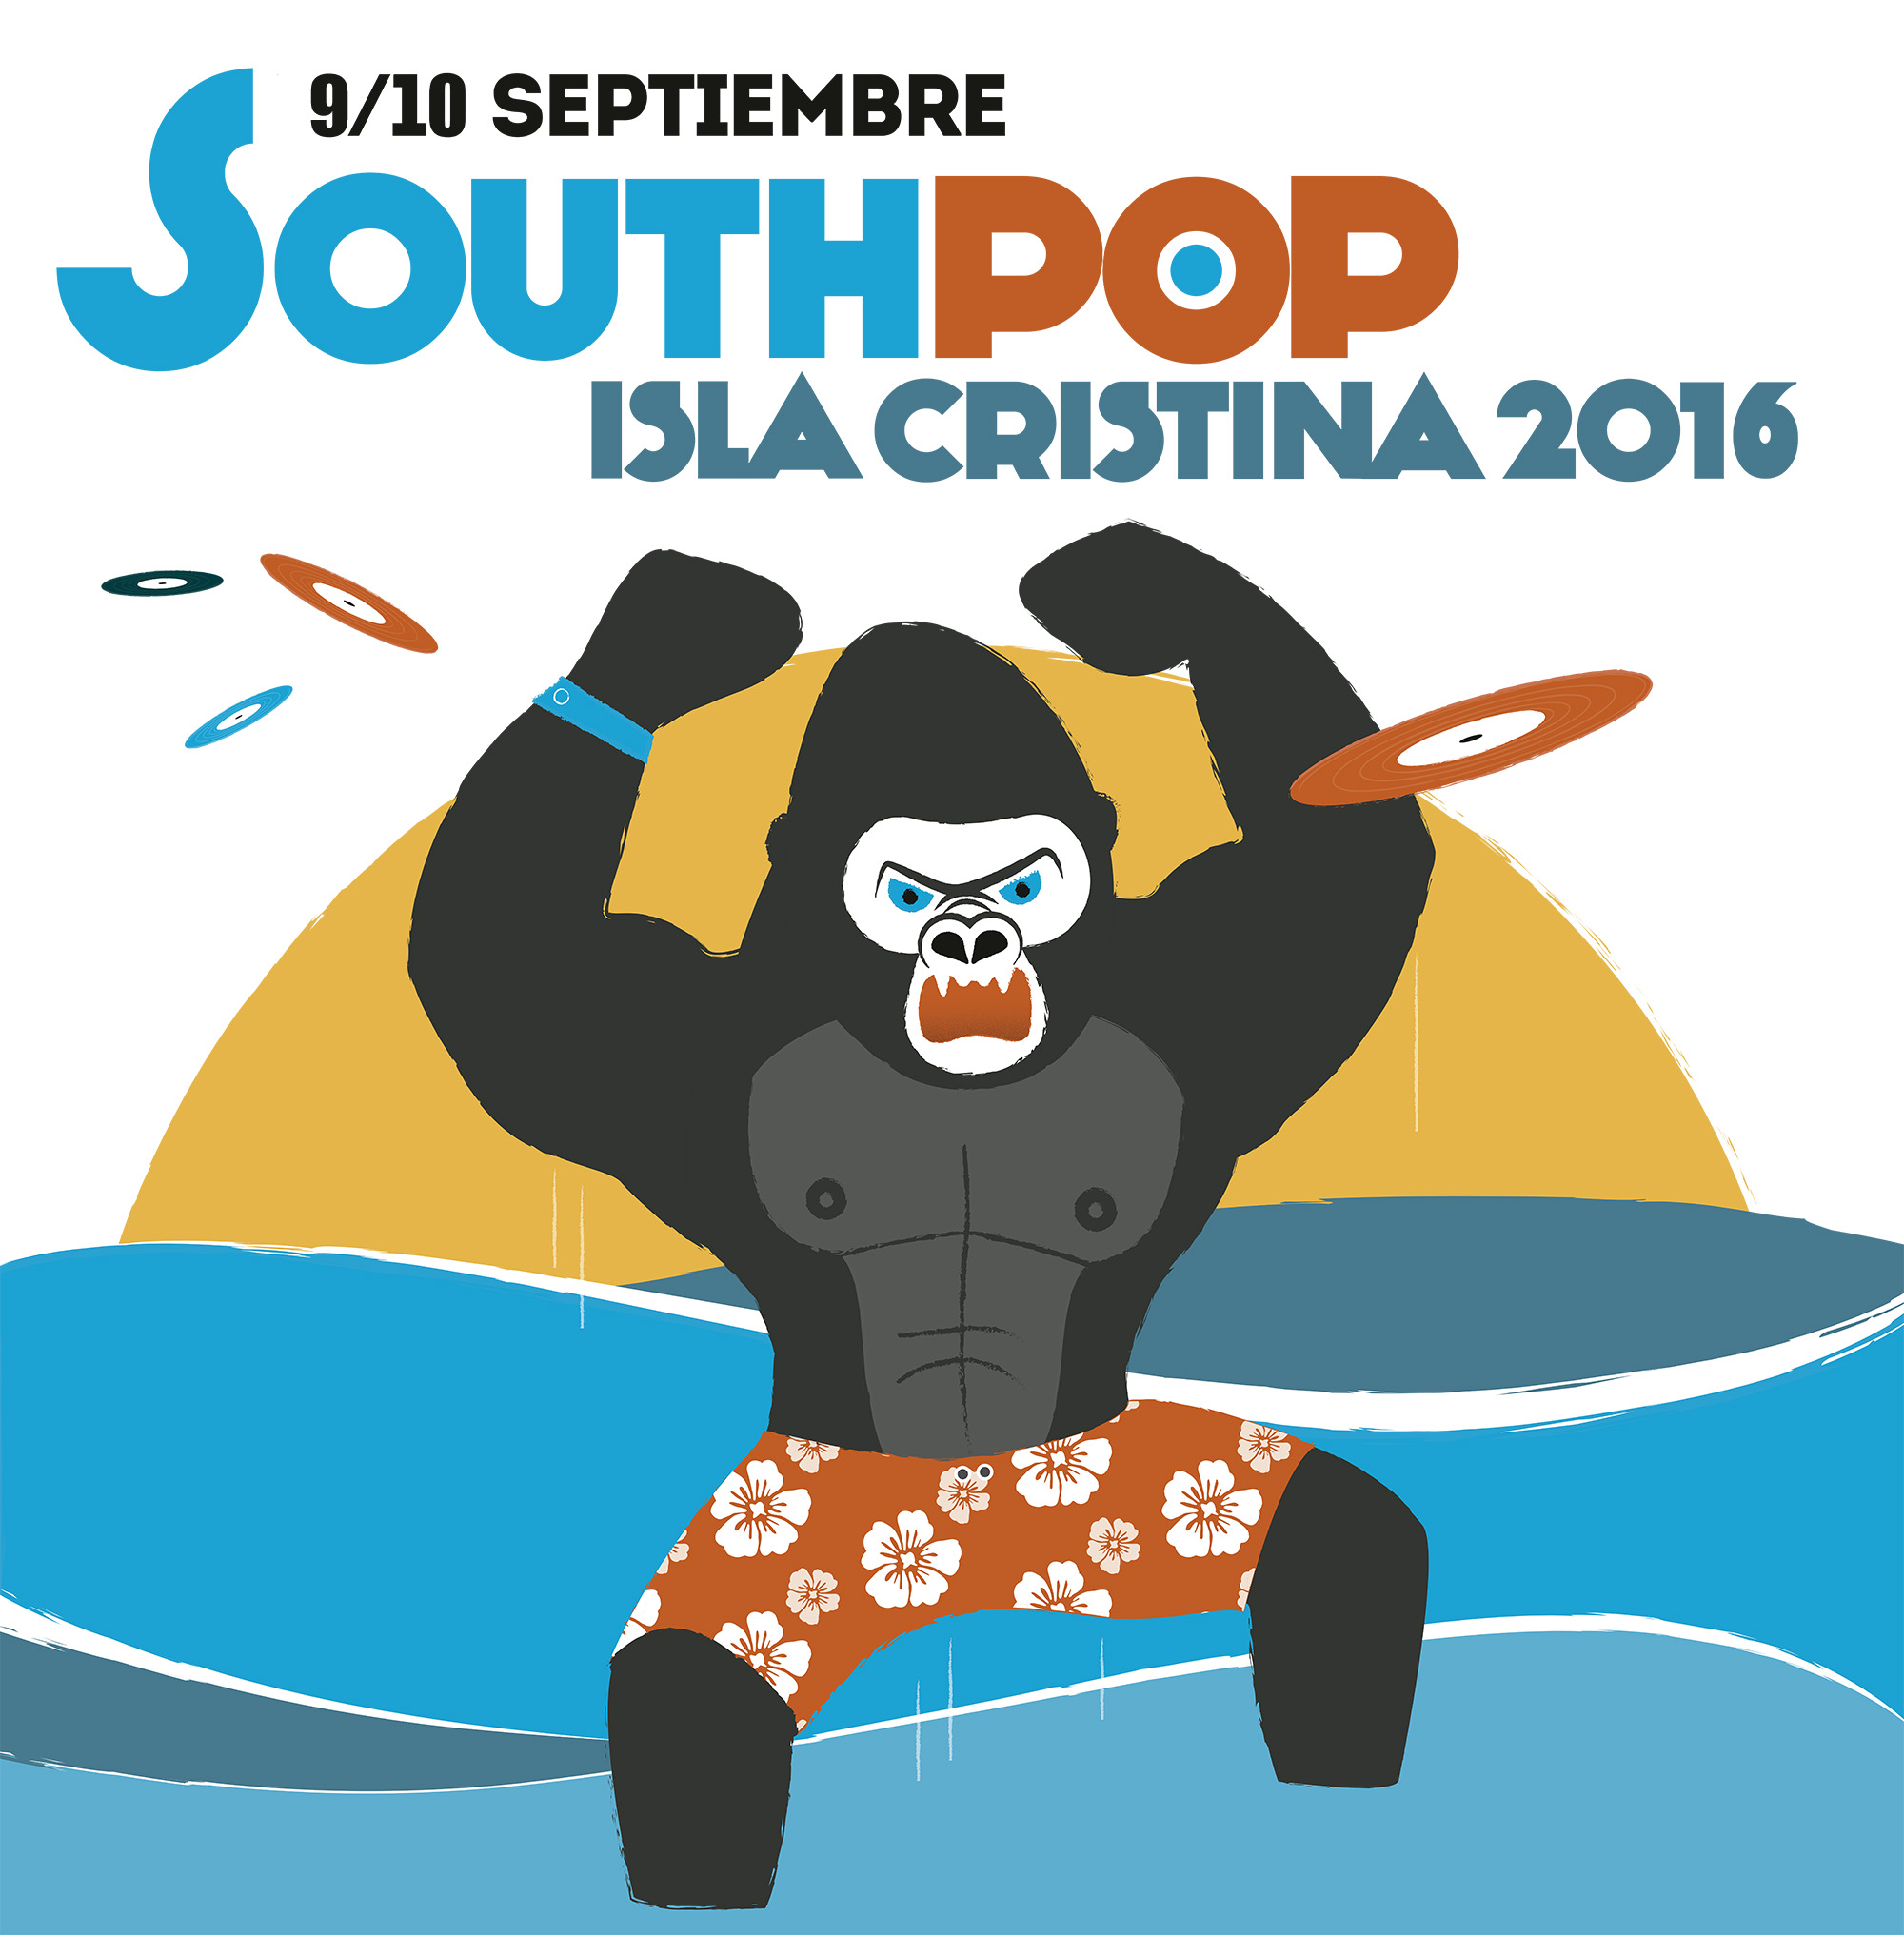 Concierto SOUTH POP ISLA CRISTINA 2016